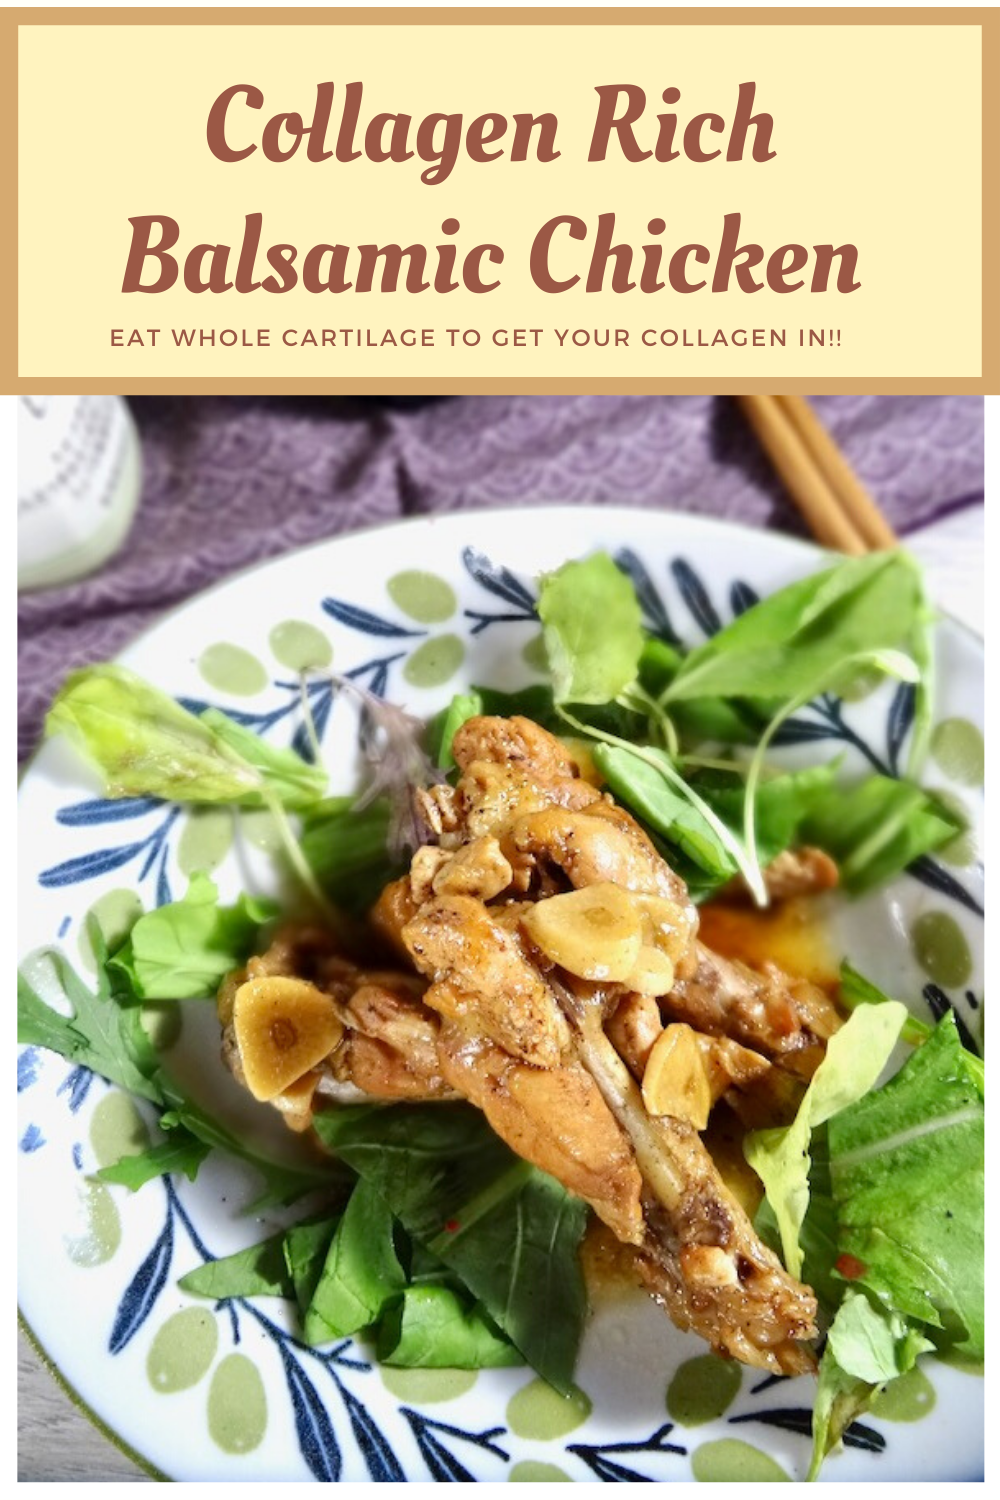 Collagen Rich Balsamic Chicken pinterest image